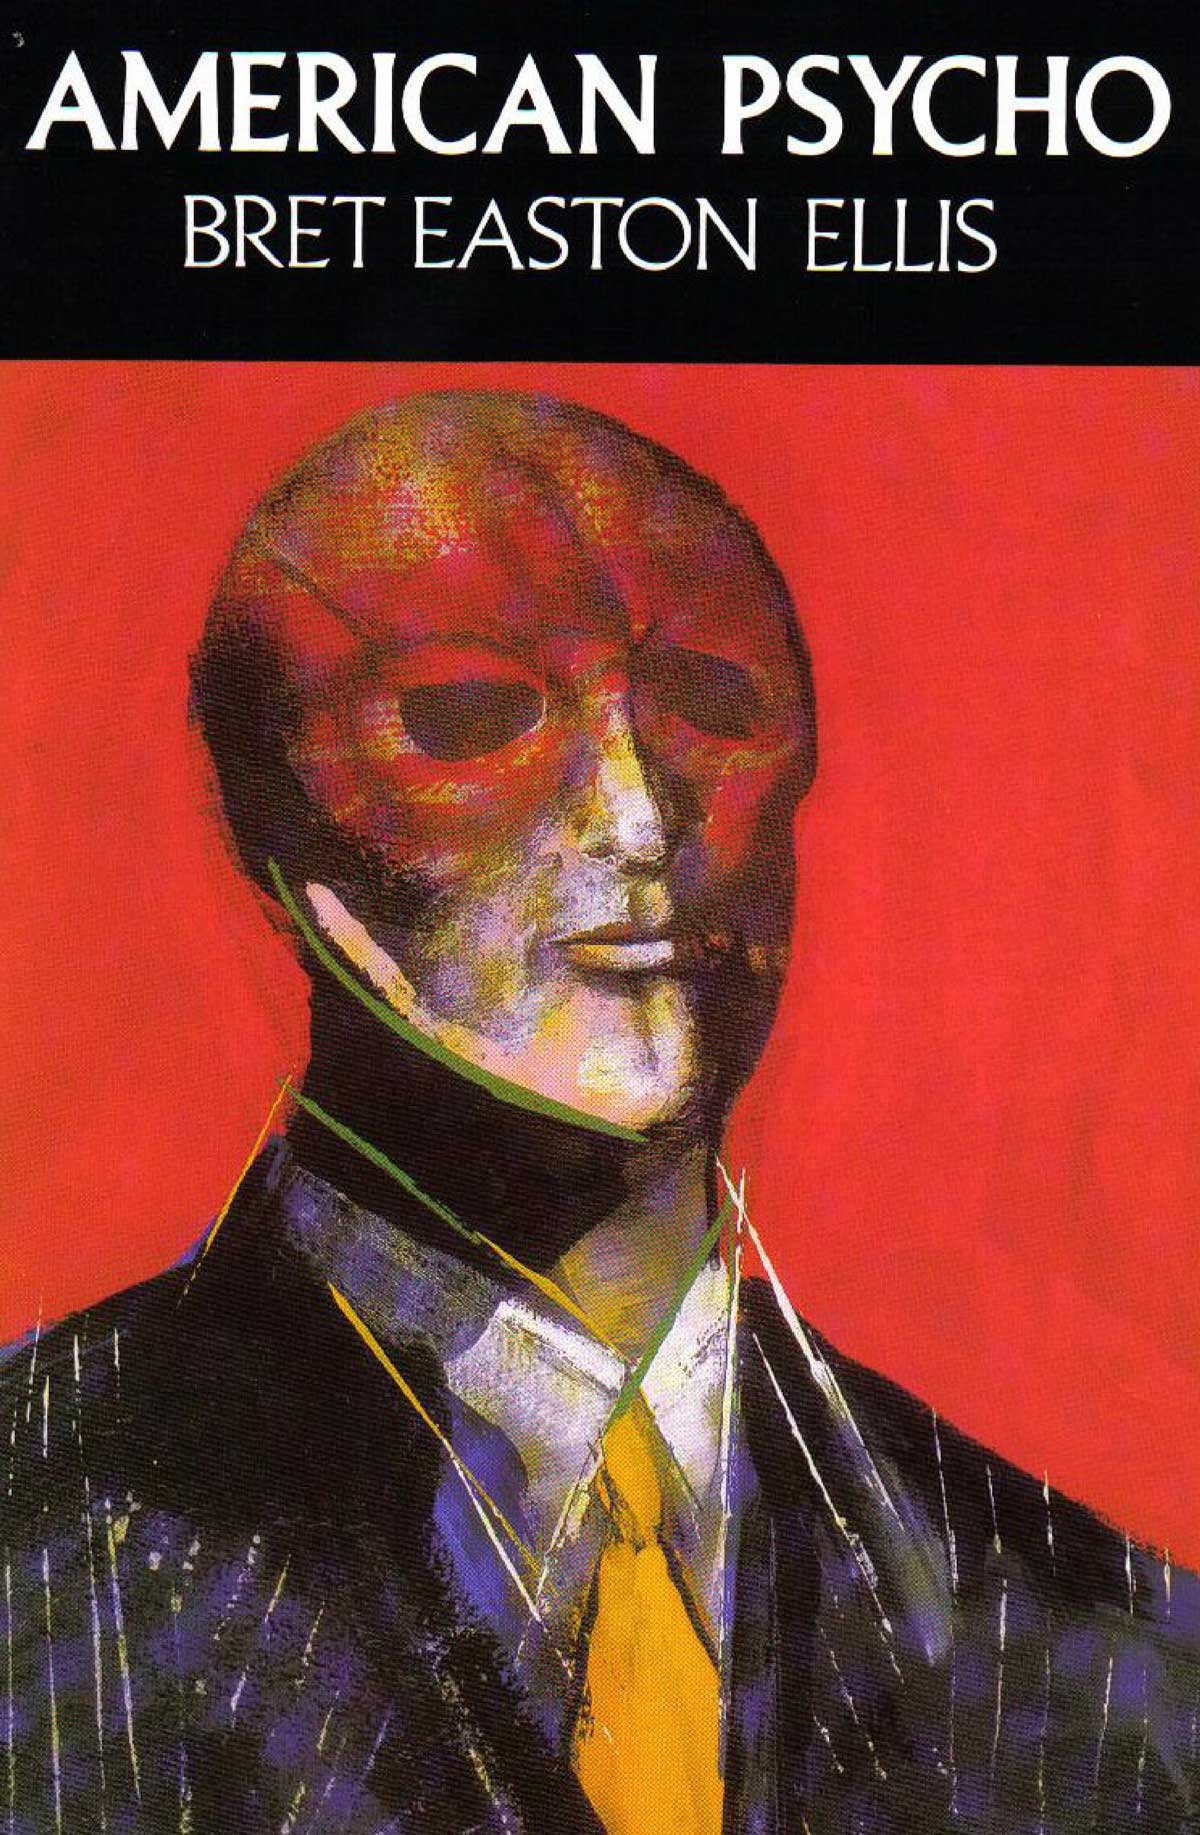 Image result for american psycho original book cover